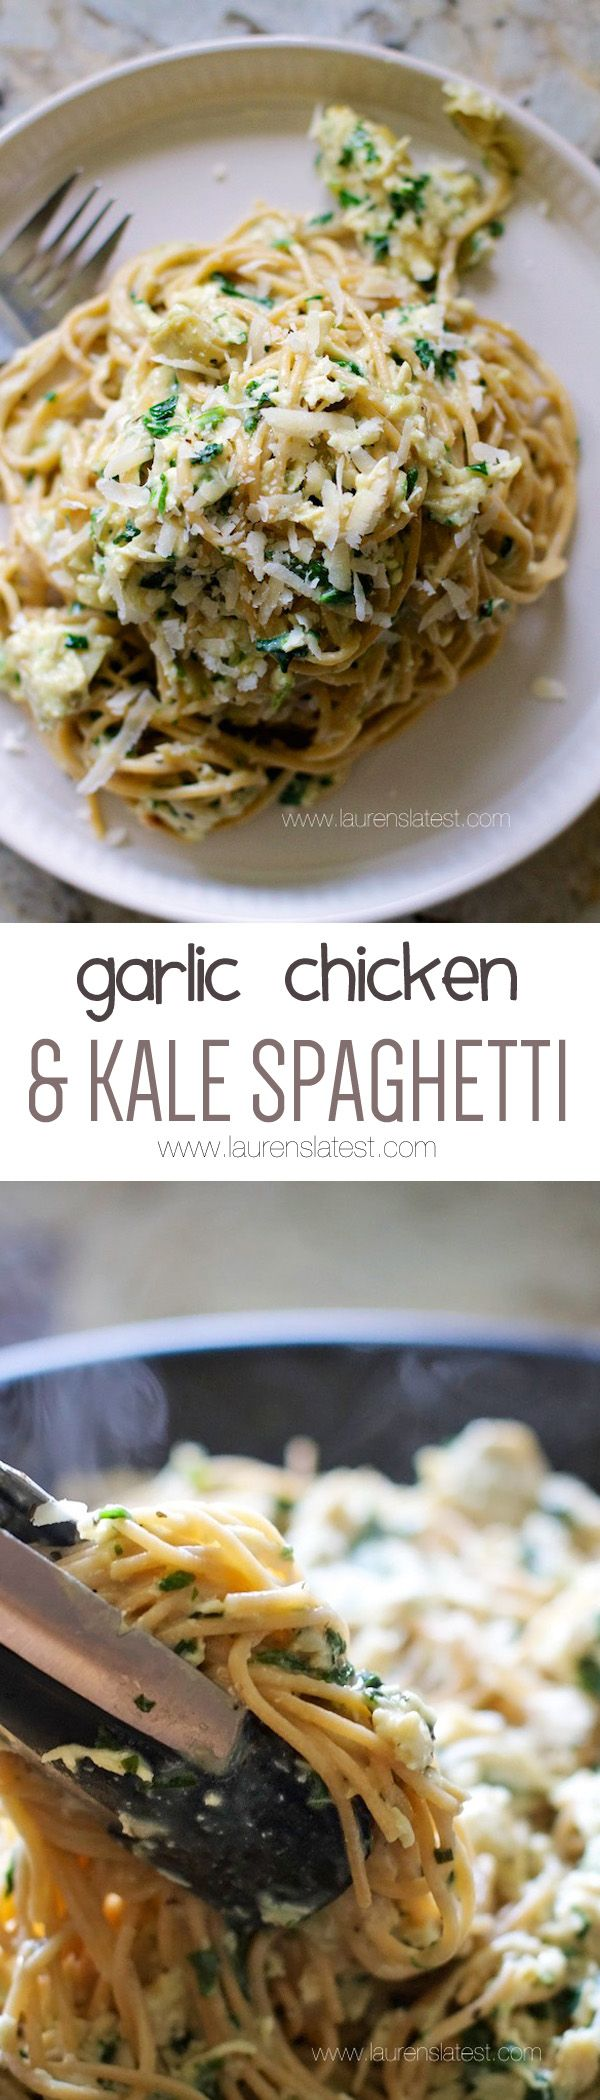 Garlic Chicken & Kale Spaghetti I can use gluten free noodles by laurenslatest #Chicken #Kale #Pasta